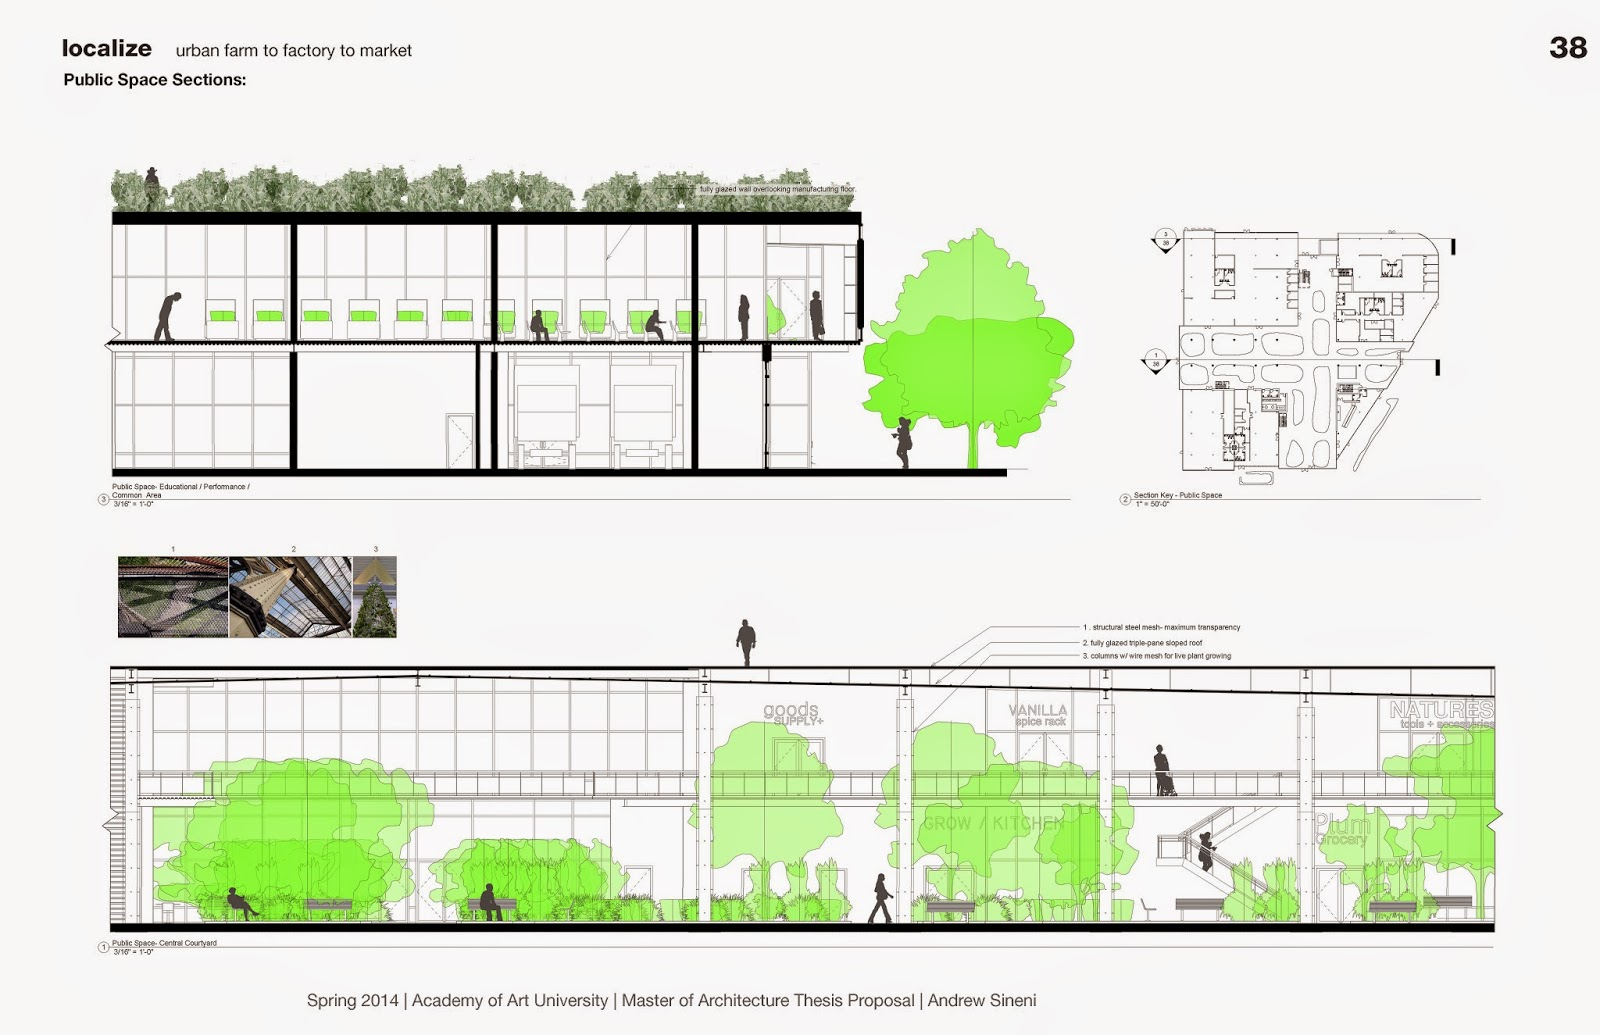 architectural thesis proposal topics 4339